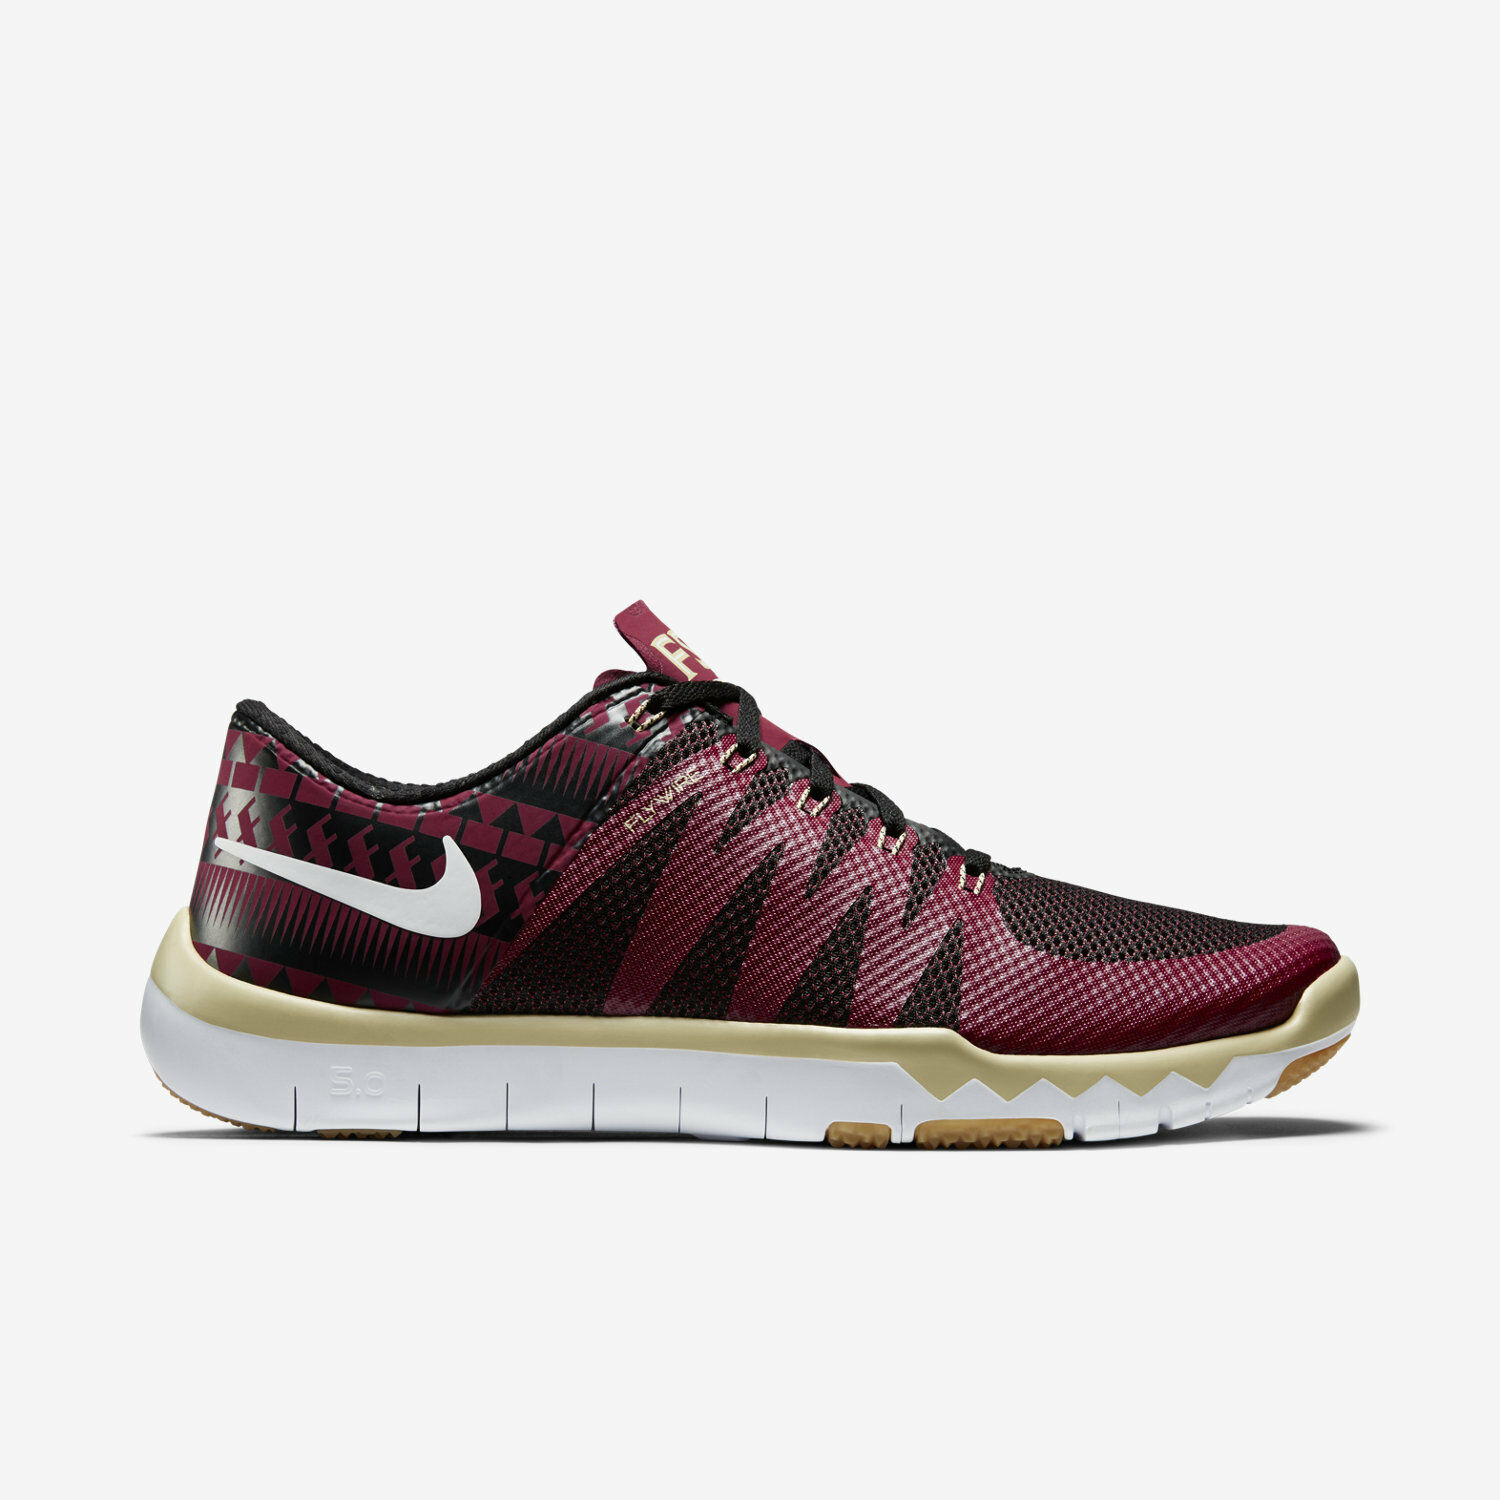 Cheap women's shoes women's shoes Nike Free Trainer 5.0 Florida State Seminoles Shoes Comfortable